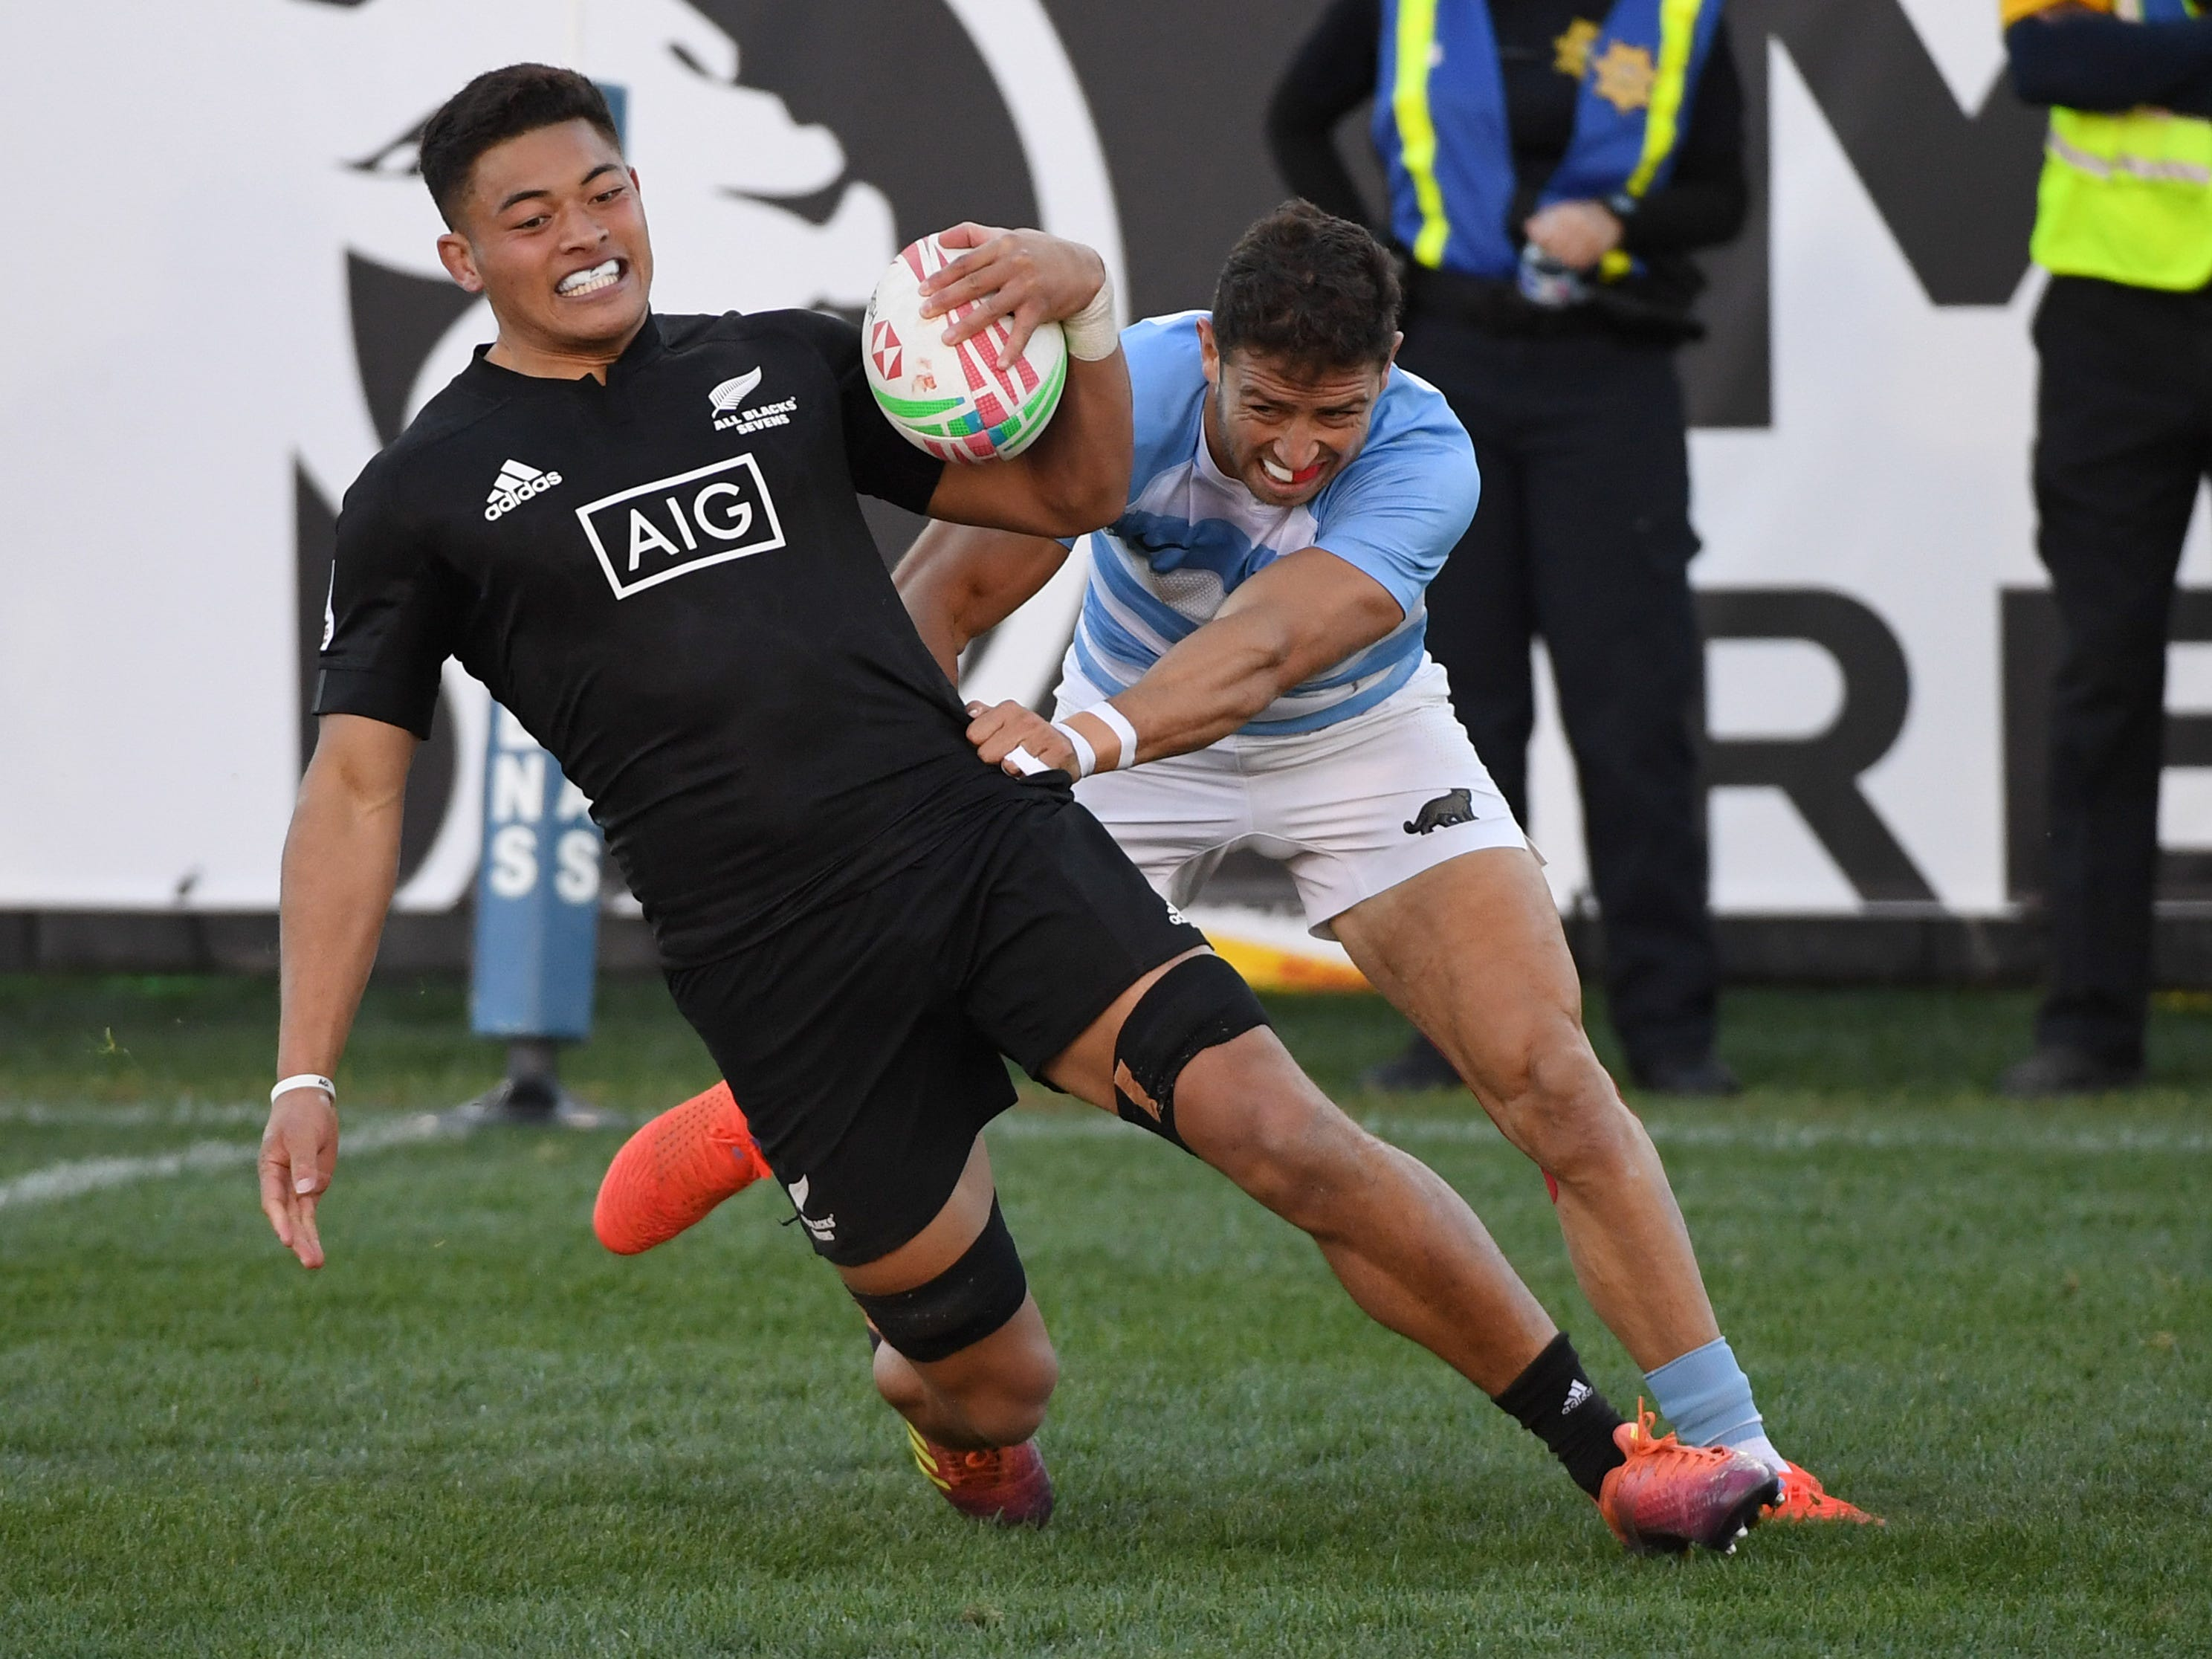 Tone Ng Shiu #3 of New Zealand scores a try against Liam McNamara #12 of Argentina during the USA Sevens Rugby tournament at Sam Boyd Stadium on March 3, 2019 in Las Vegas, Nevada. New Zealand won 26-19. A. Jon Prusmack revived the USA Sevens, moved it to Las Vegas and grew it to one of the most popular tour stops on the international calendar.